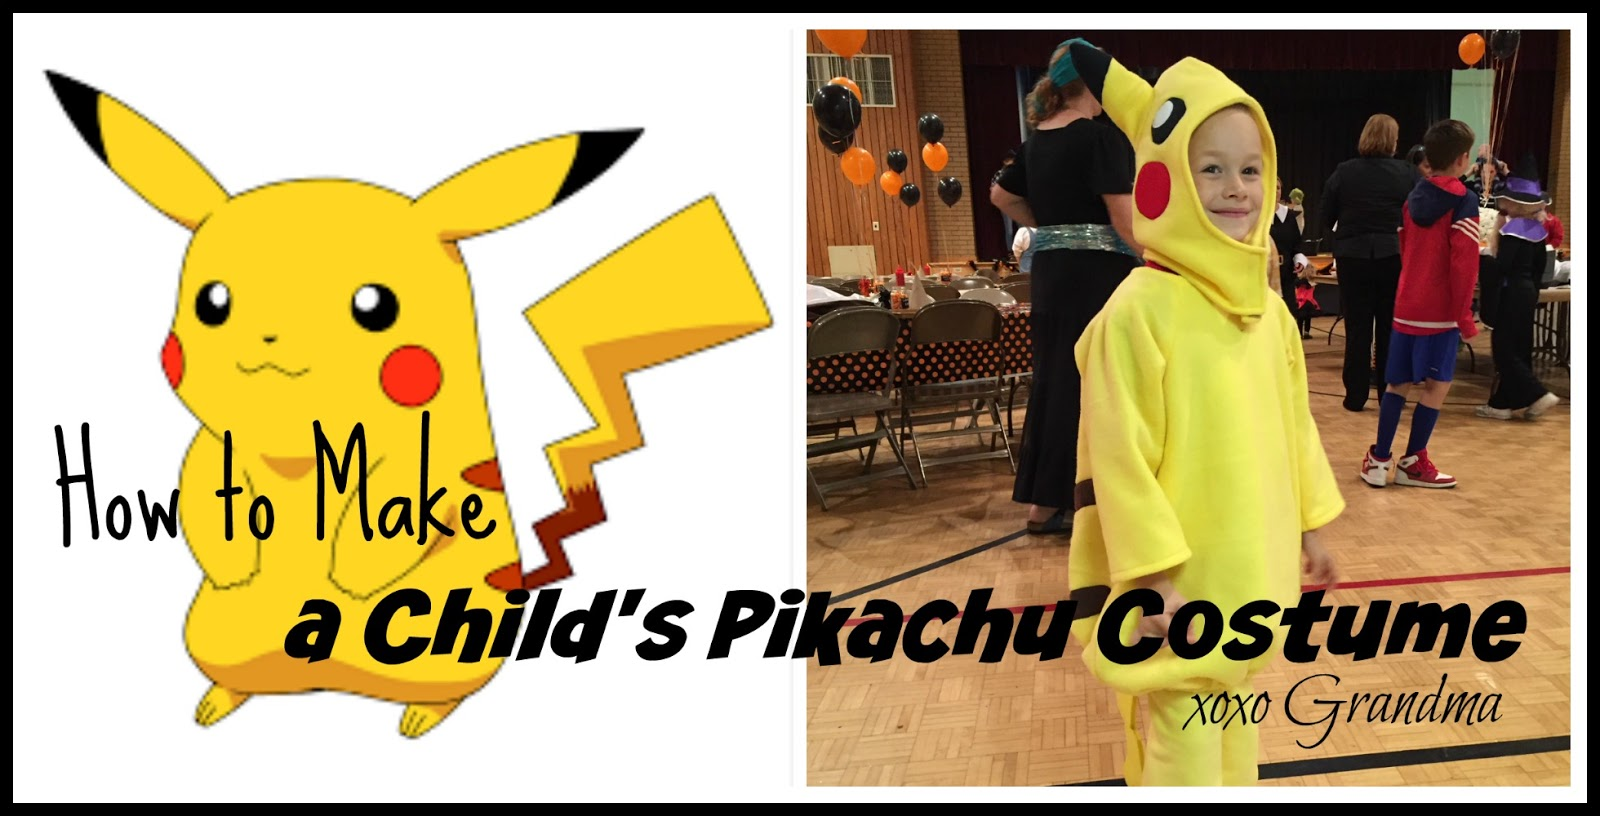 xoxo grandma: how to make a child's pikachu costume